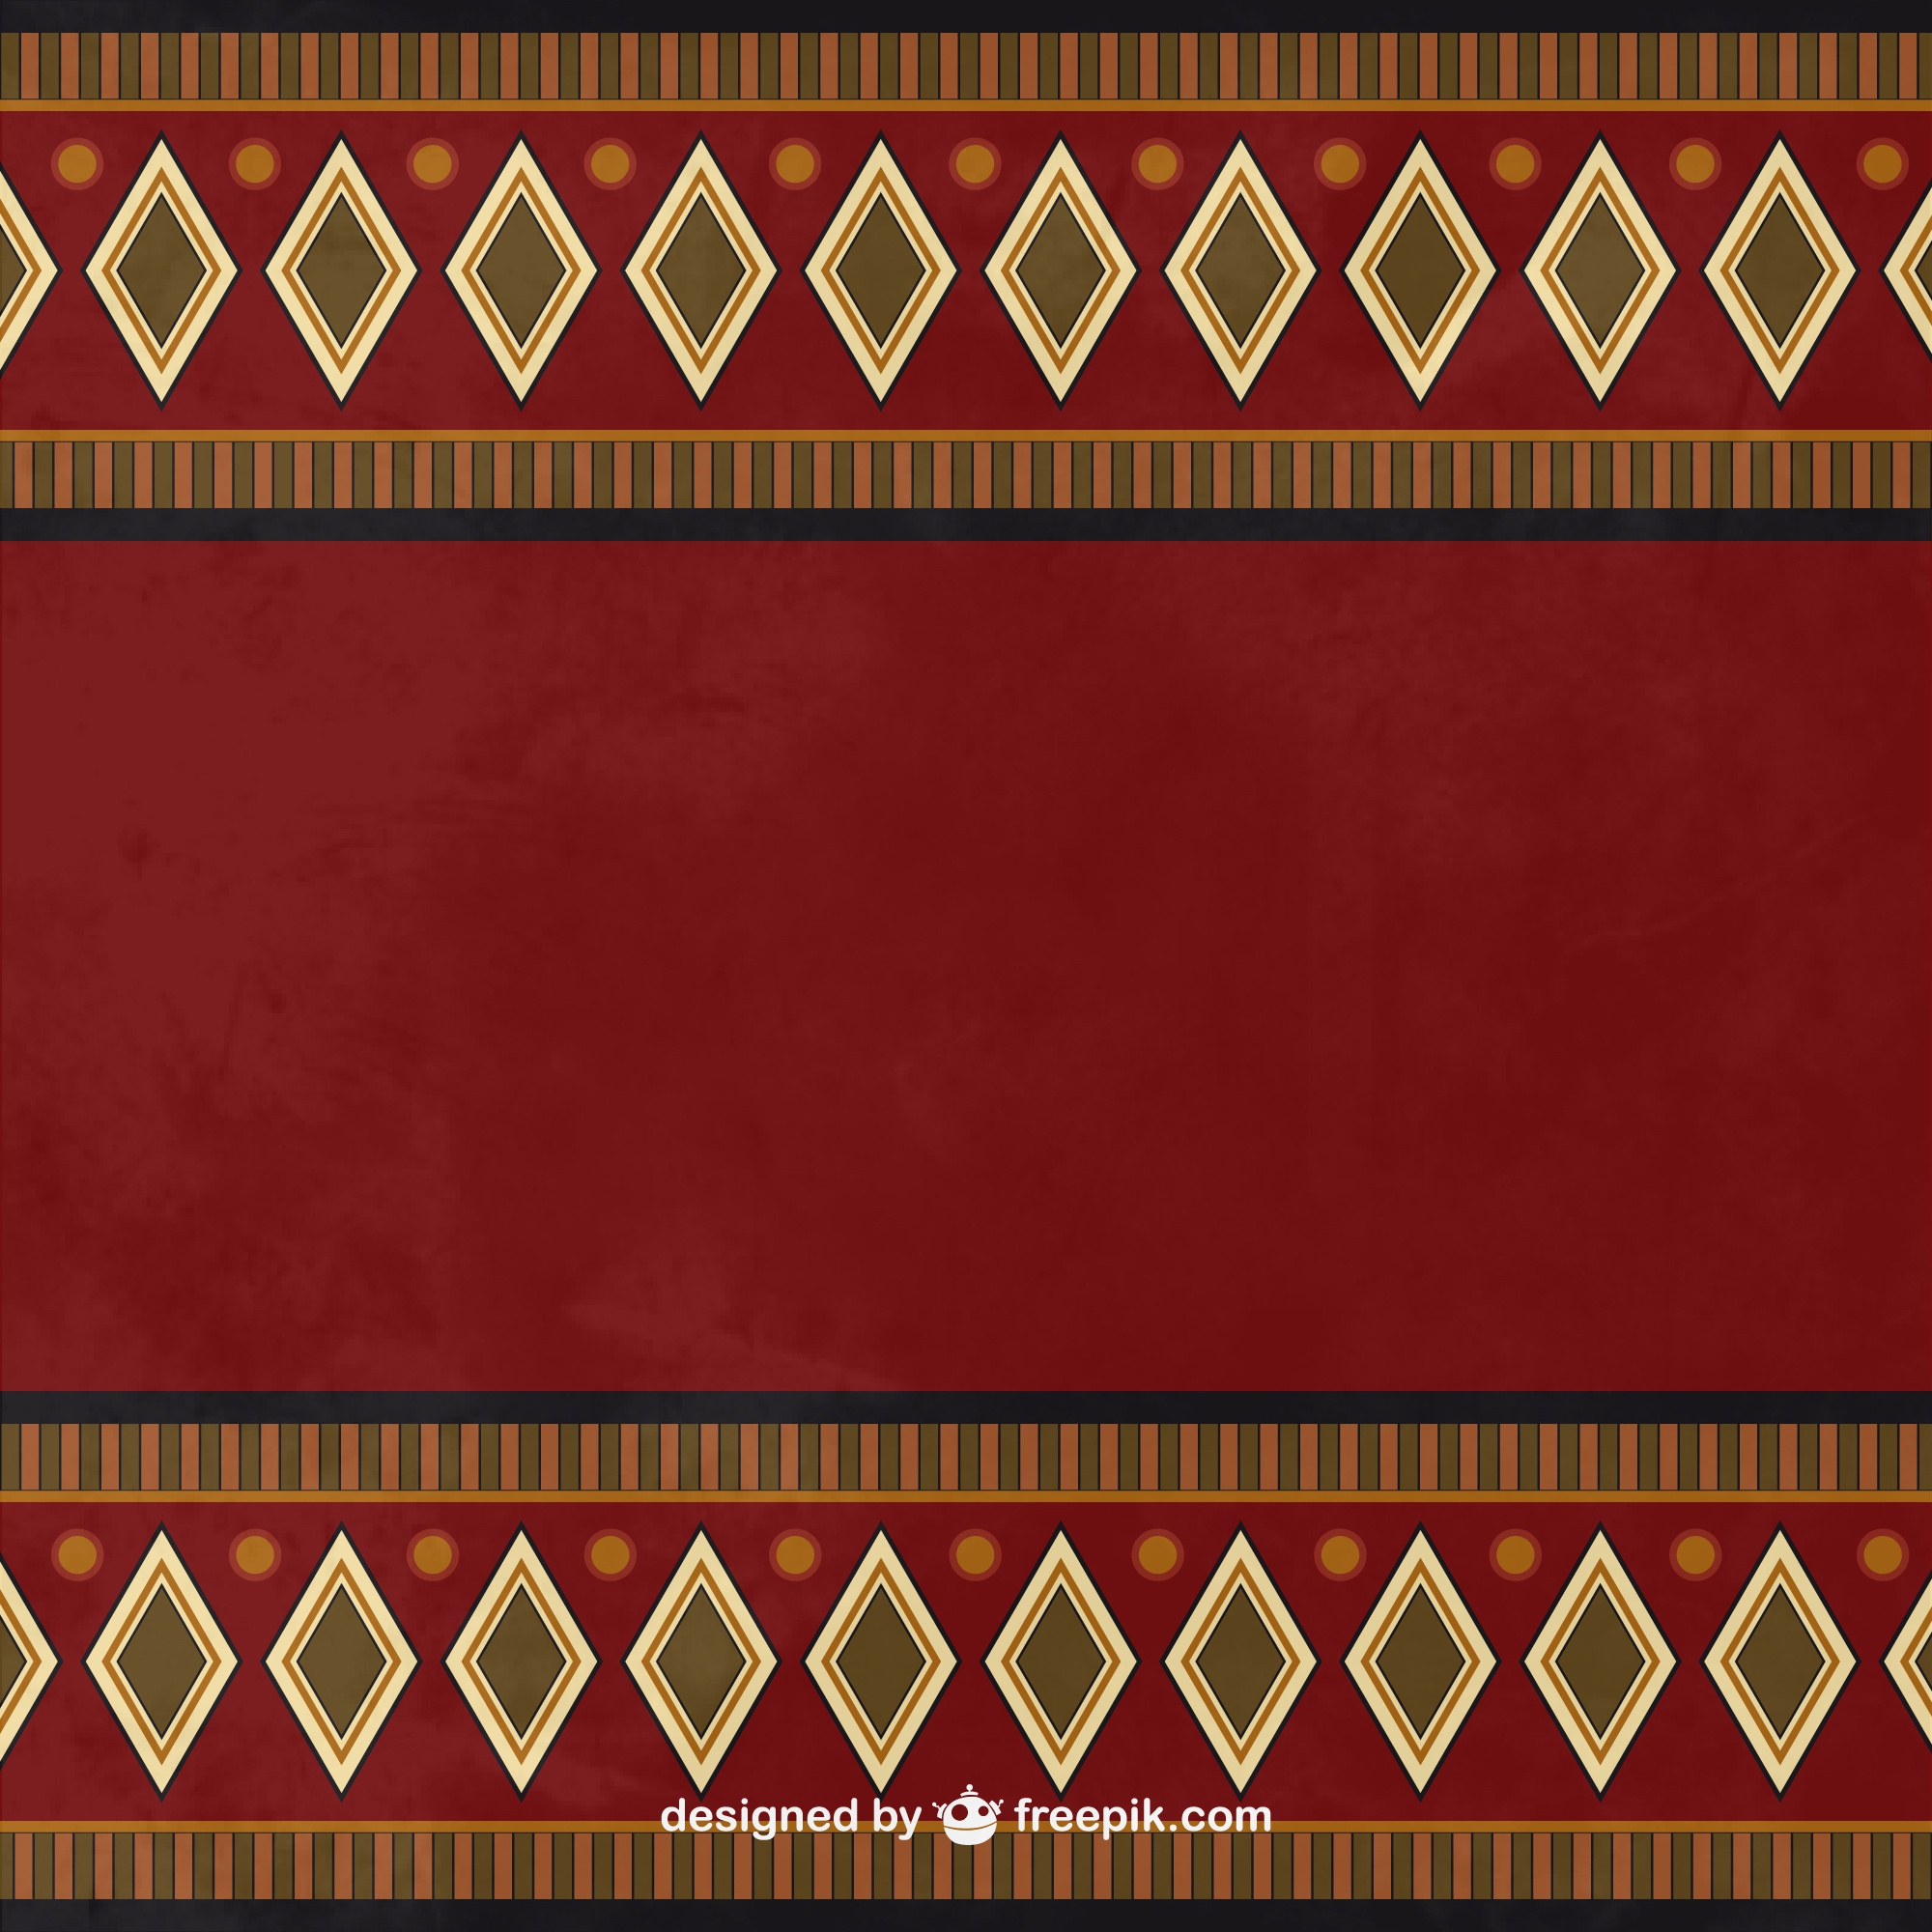 Ethnic background in dark tones